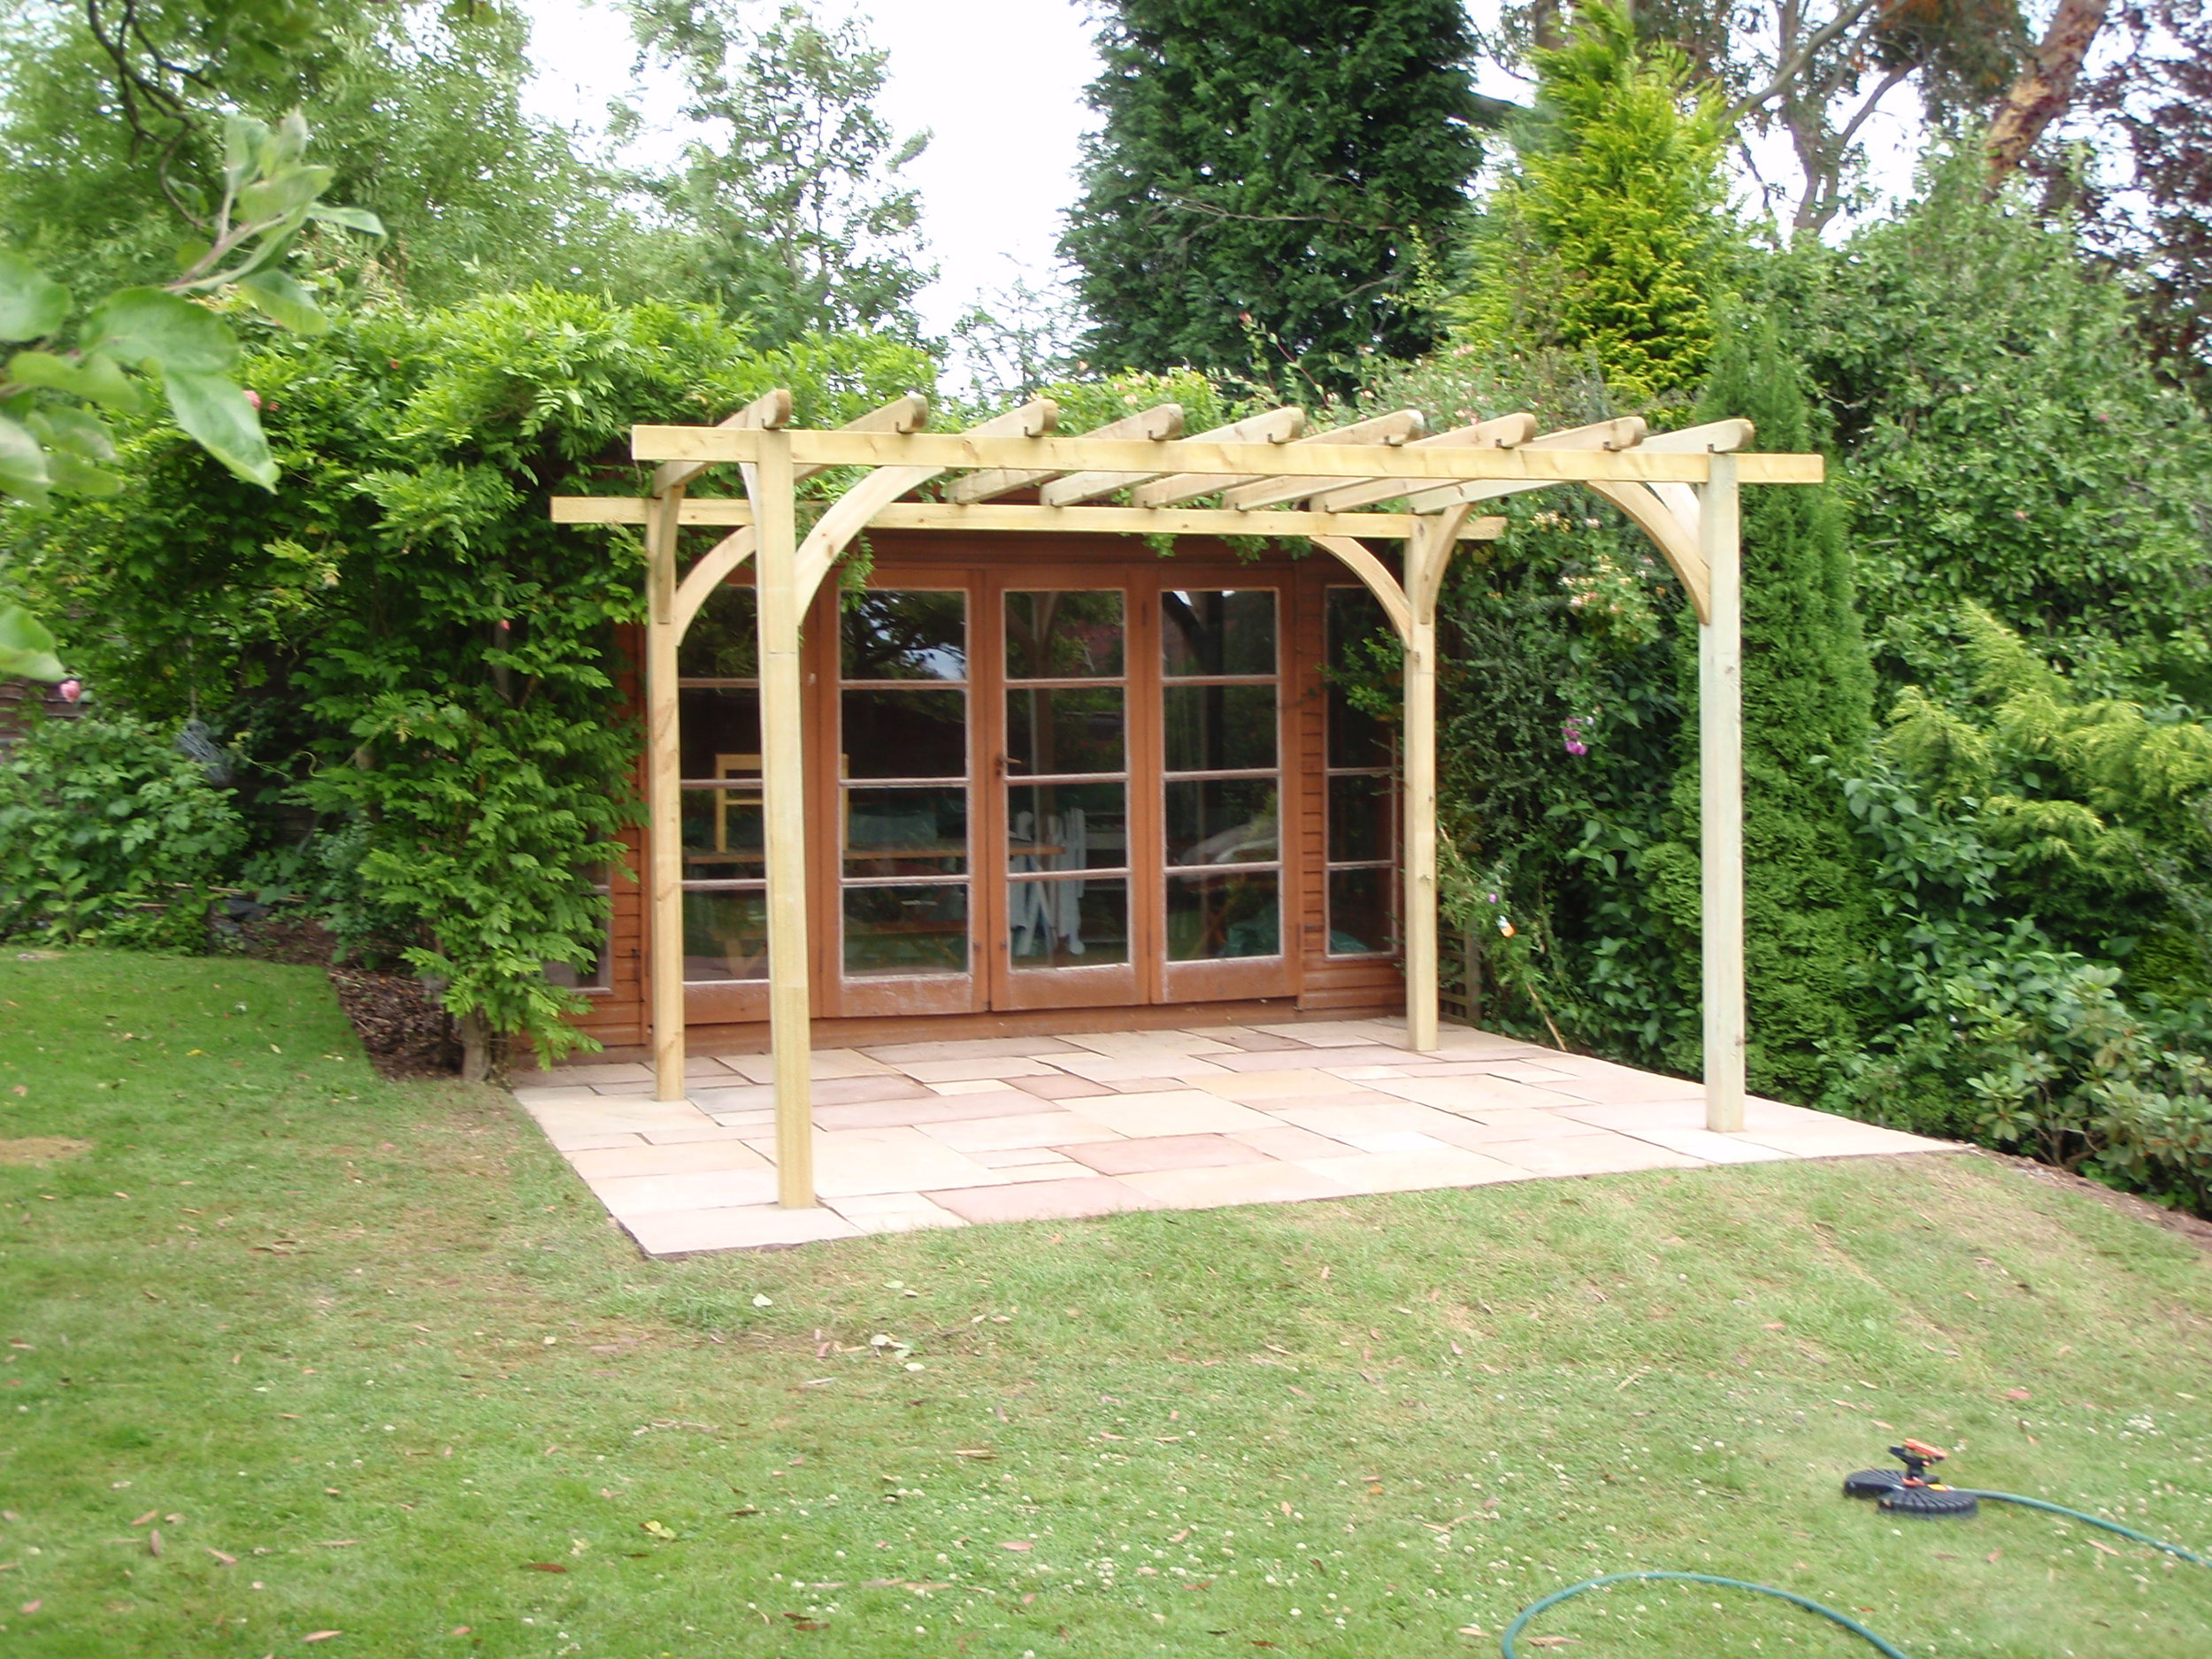 Natural stone paving with pergola - Hagley, Worcestershire